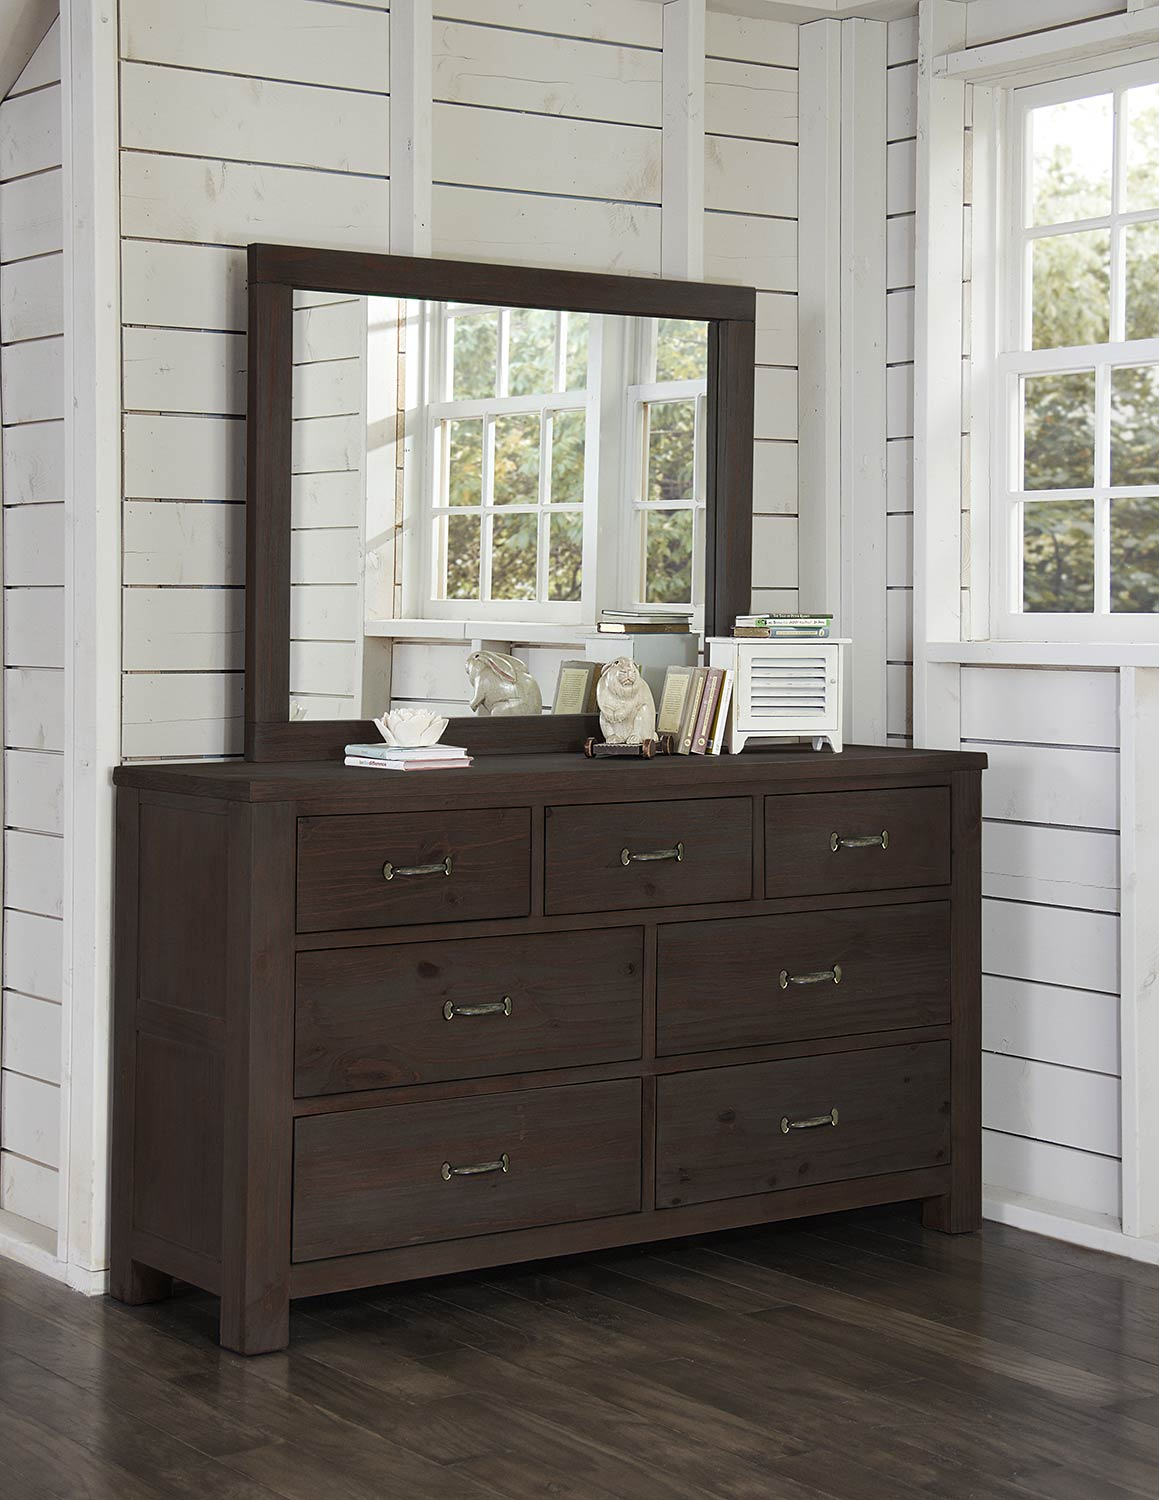 NE Kids Highlands 7 Drawer Dresser with Mirror - Espresso